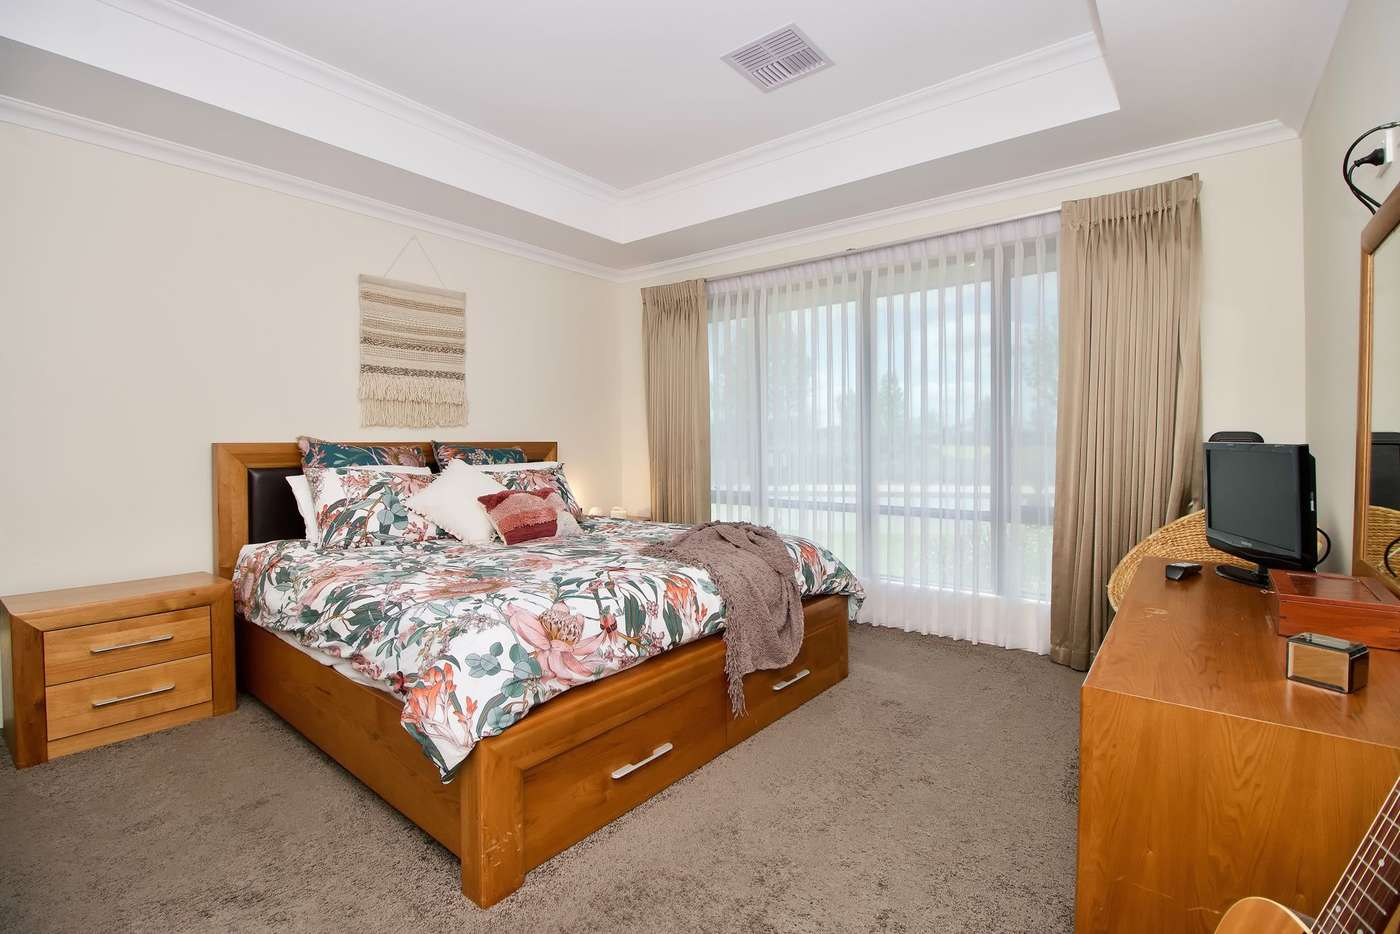 Sixth view of Homely house listing, 2 Whinhill Loop, Baldivis WA 6171